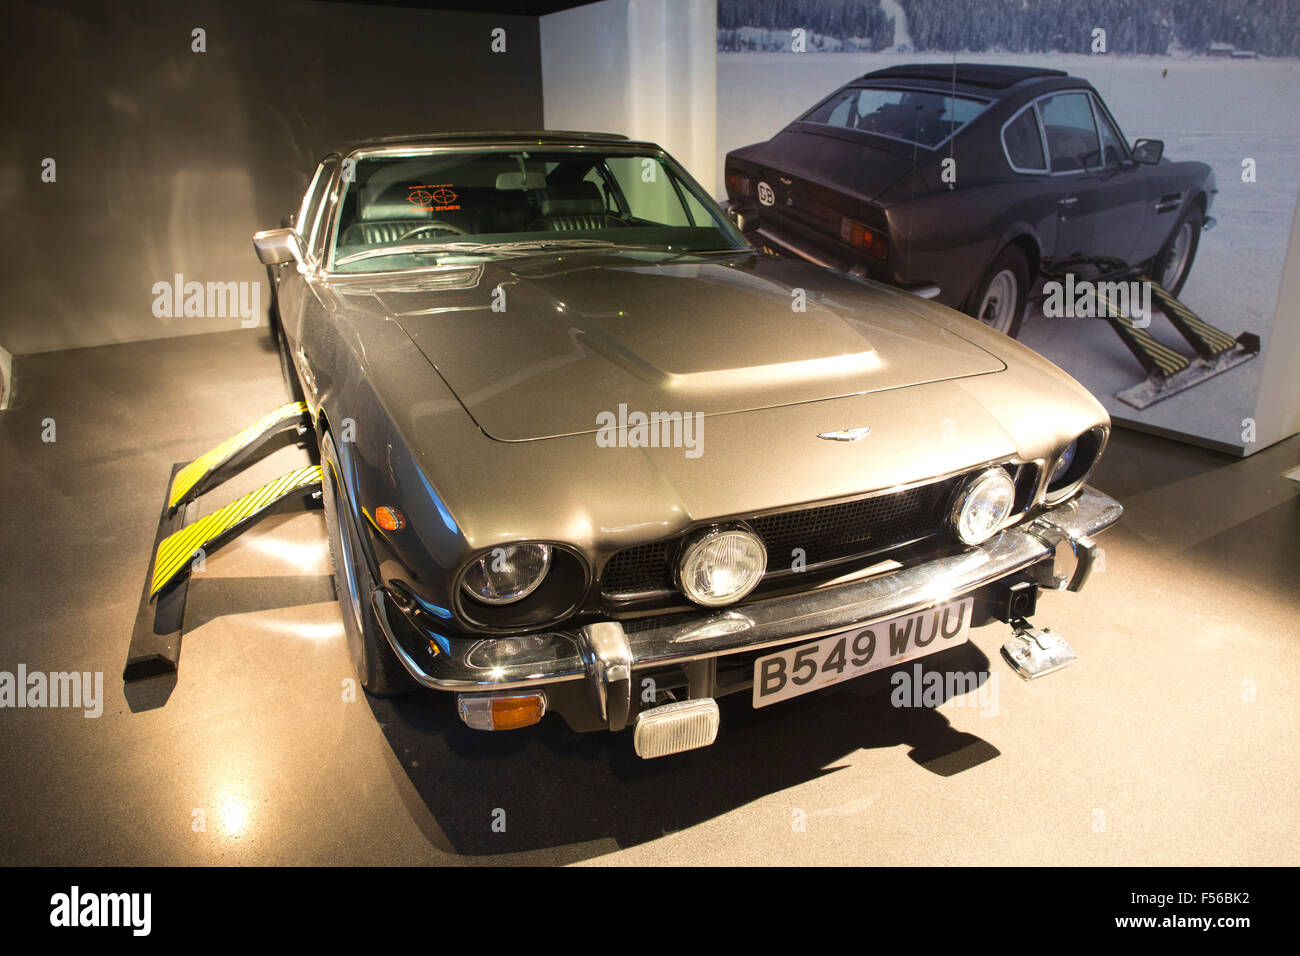 Aston Martin V8 used in James Bond 'Living Daylights' 1987 film. BOND IN MOTION, James Bond exhibition, - Stock Image